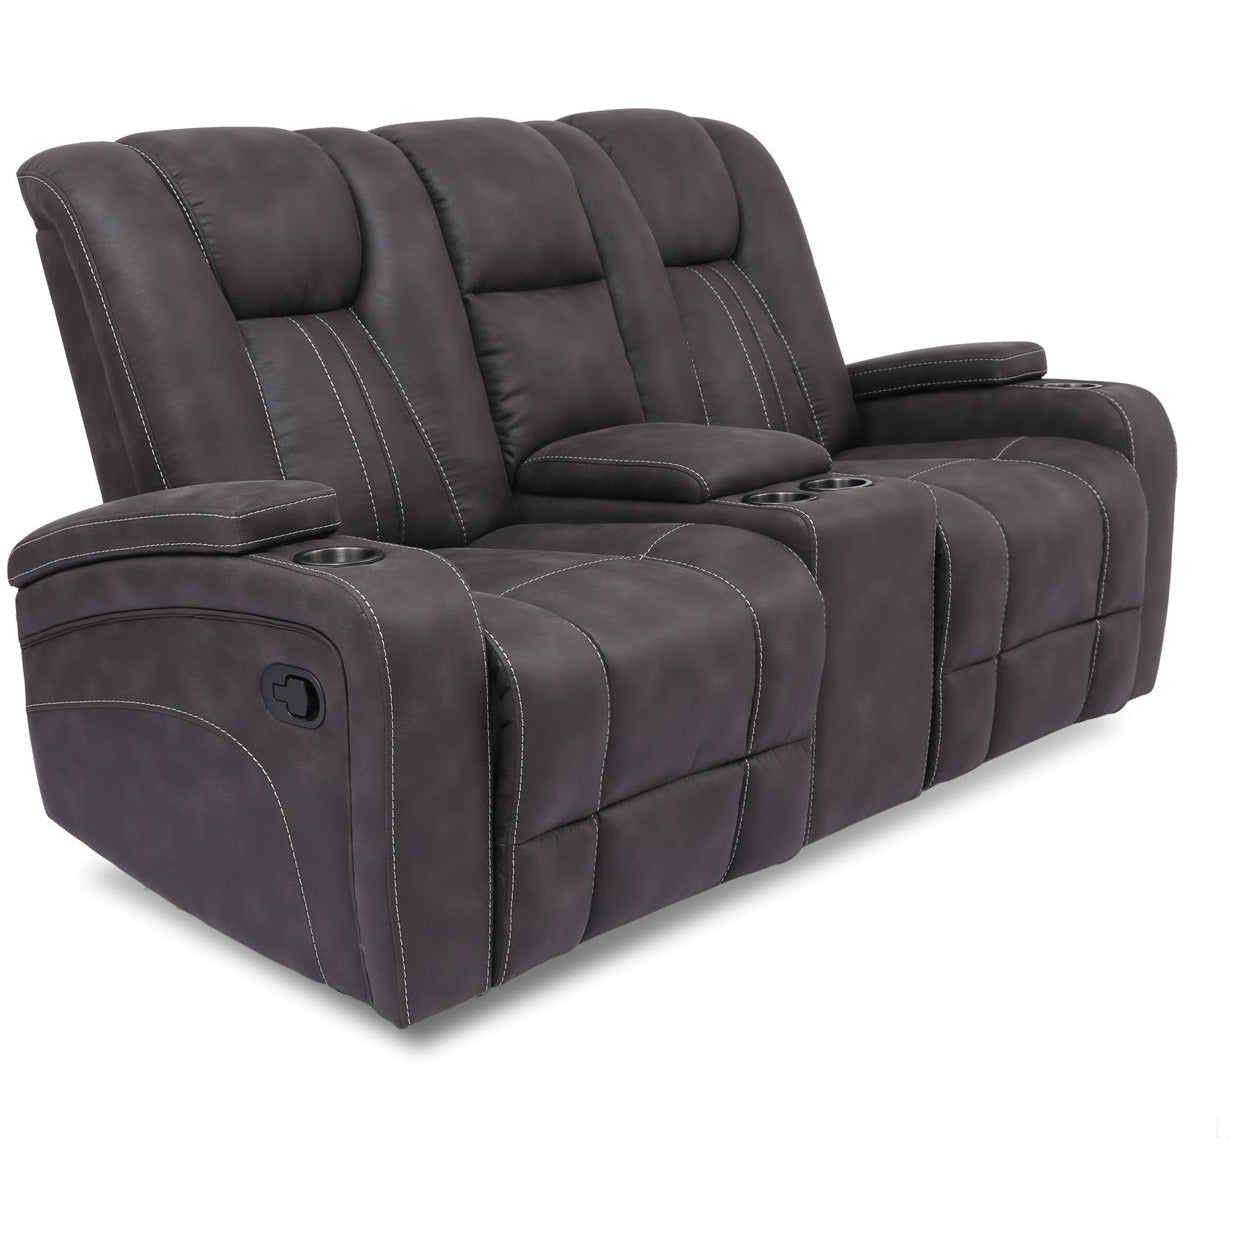 Cowboy Reclining Loveseat with Console